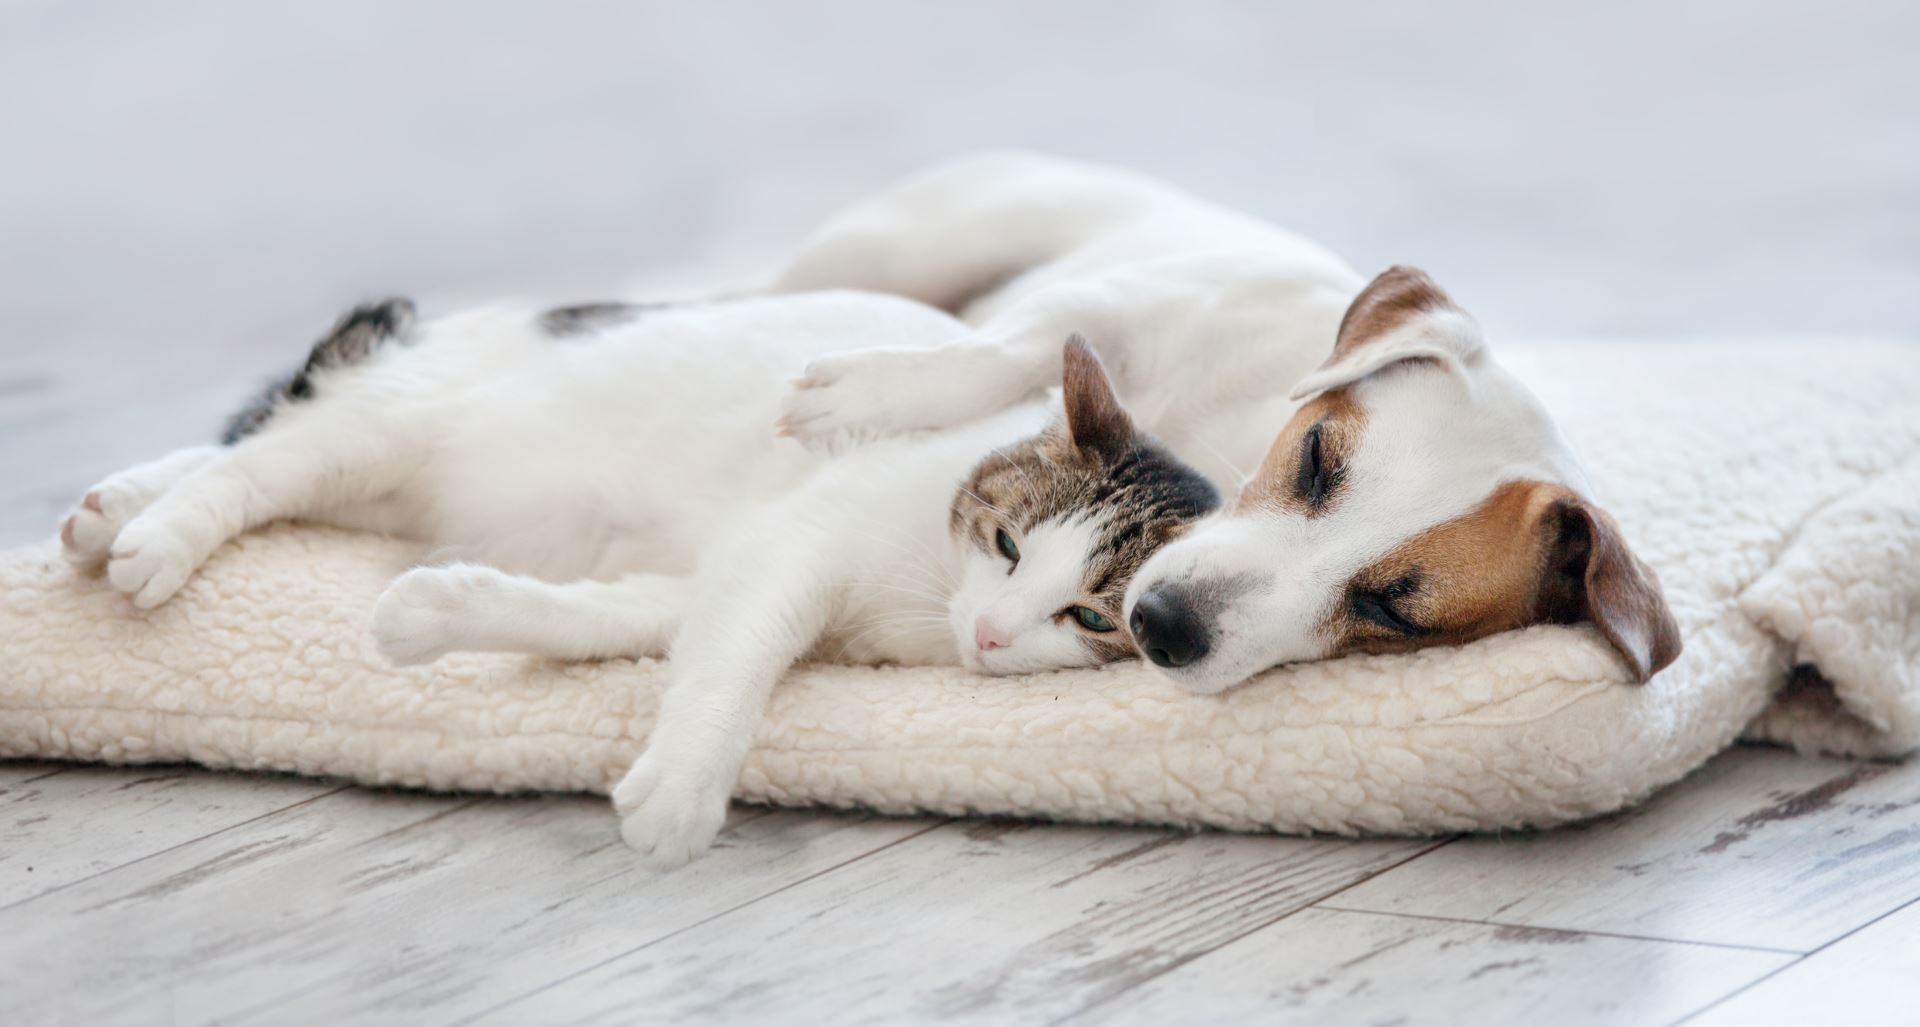 Cat and dog sleeping. Pets sleeping embracing